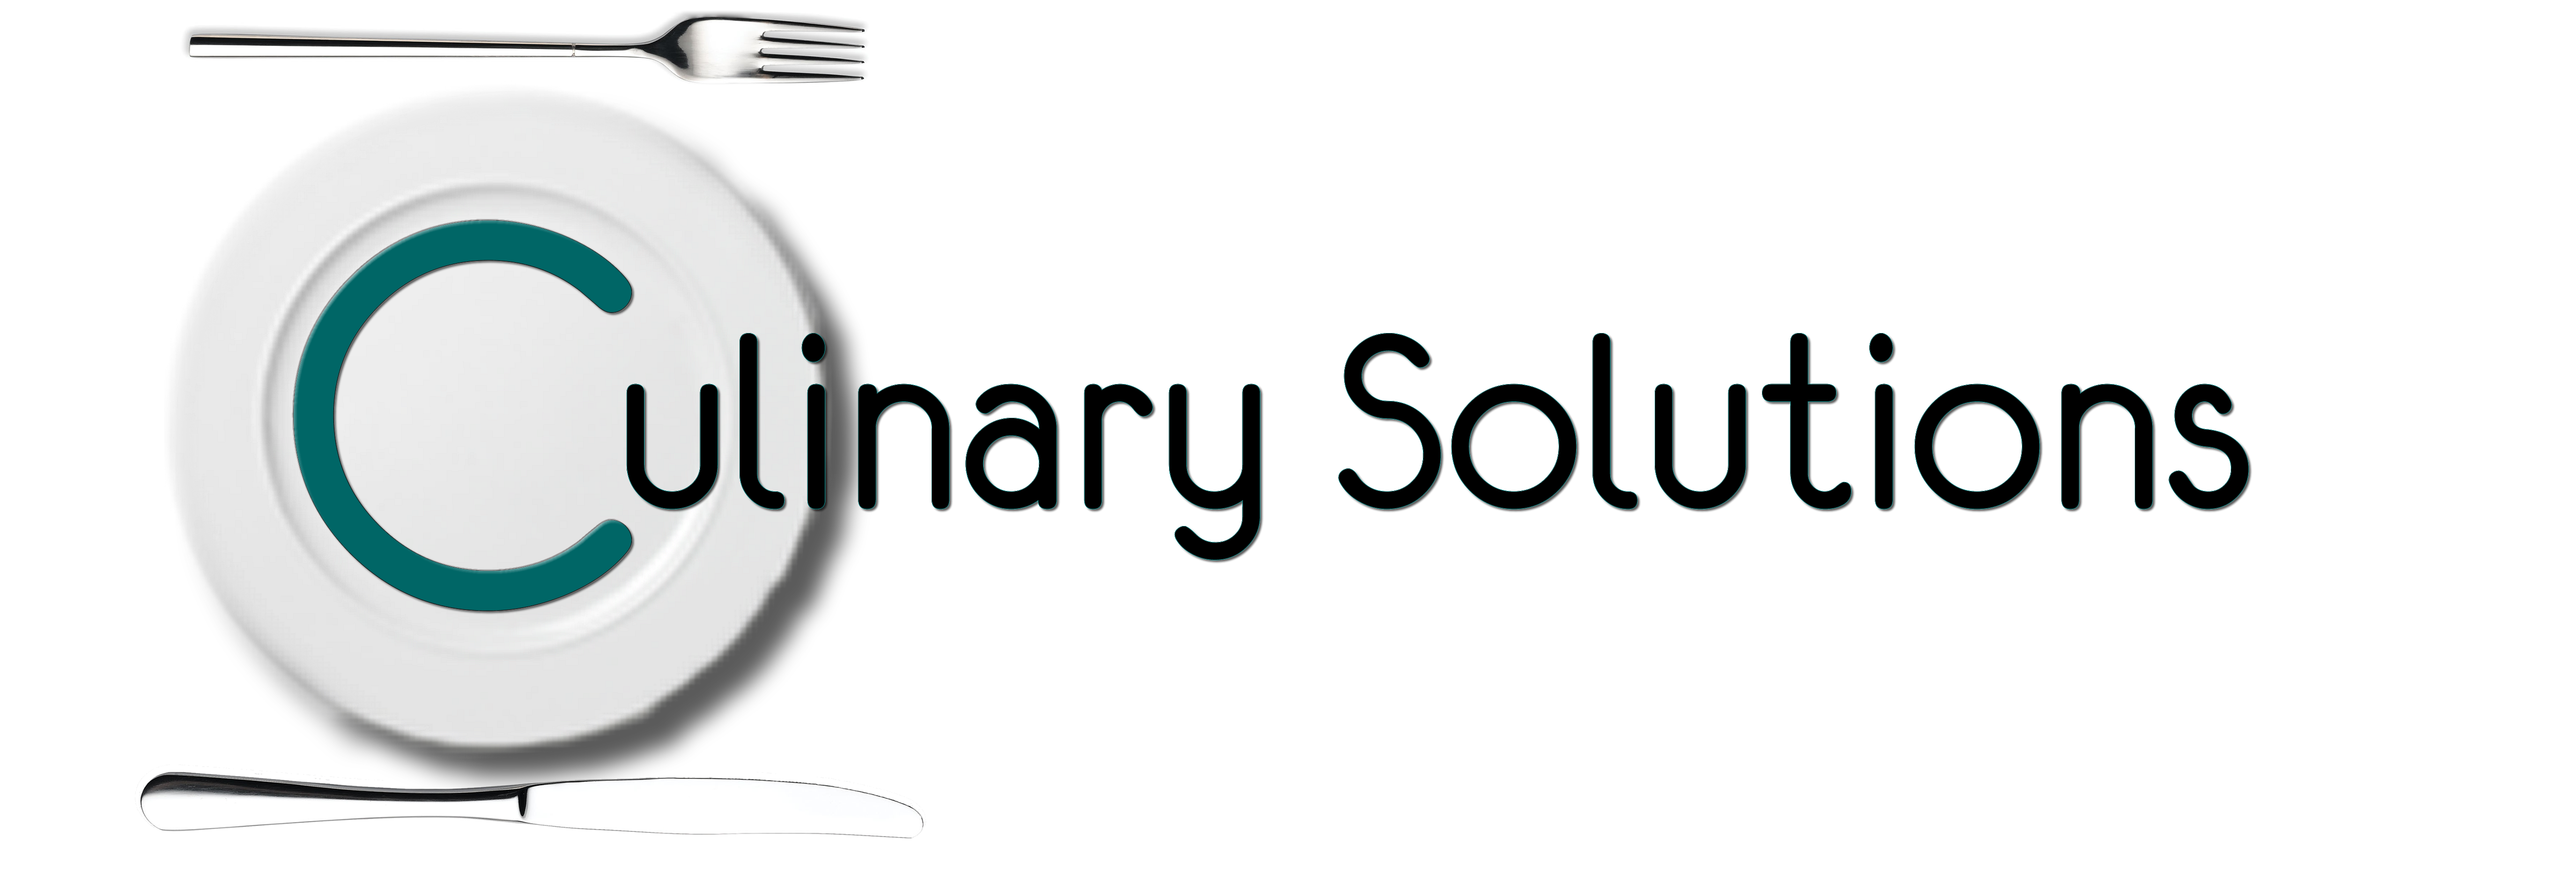 culinary-solutions-logo